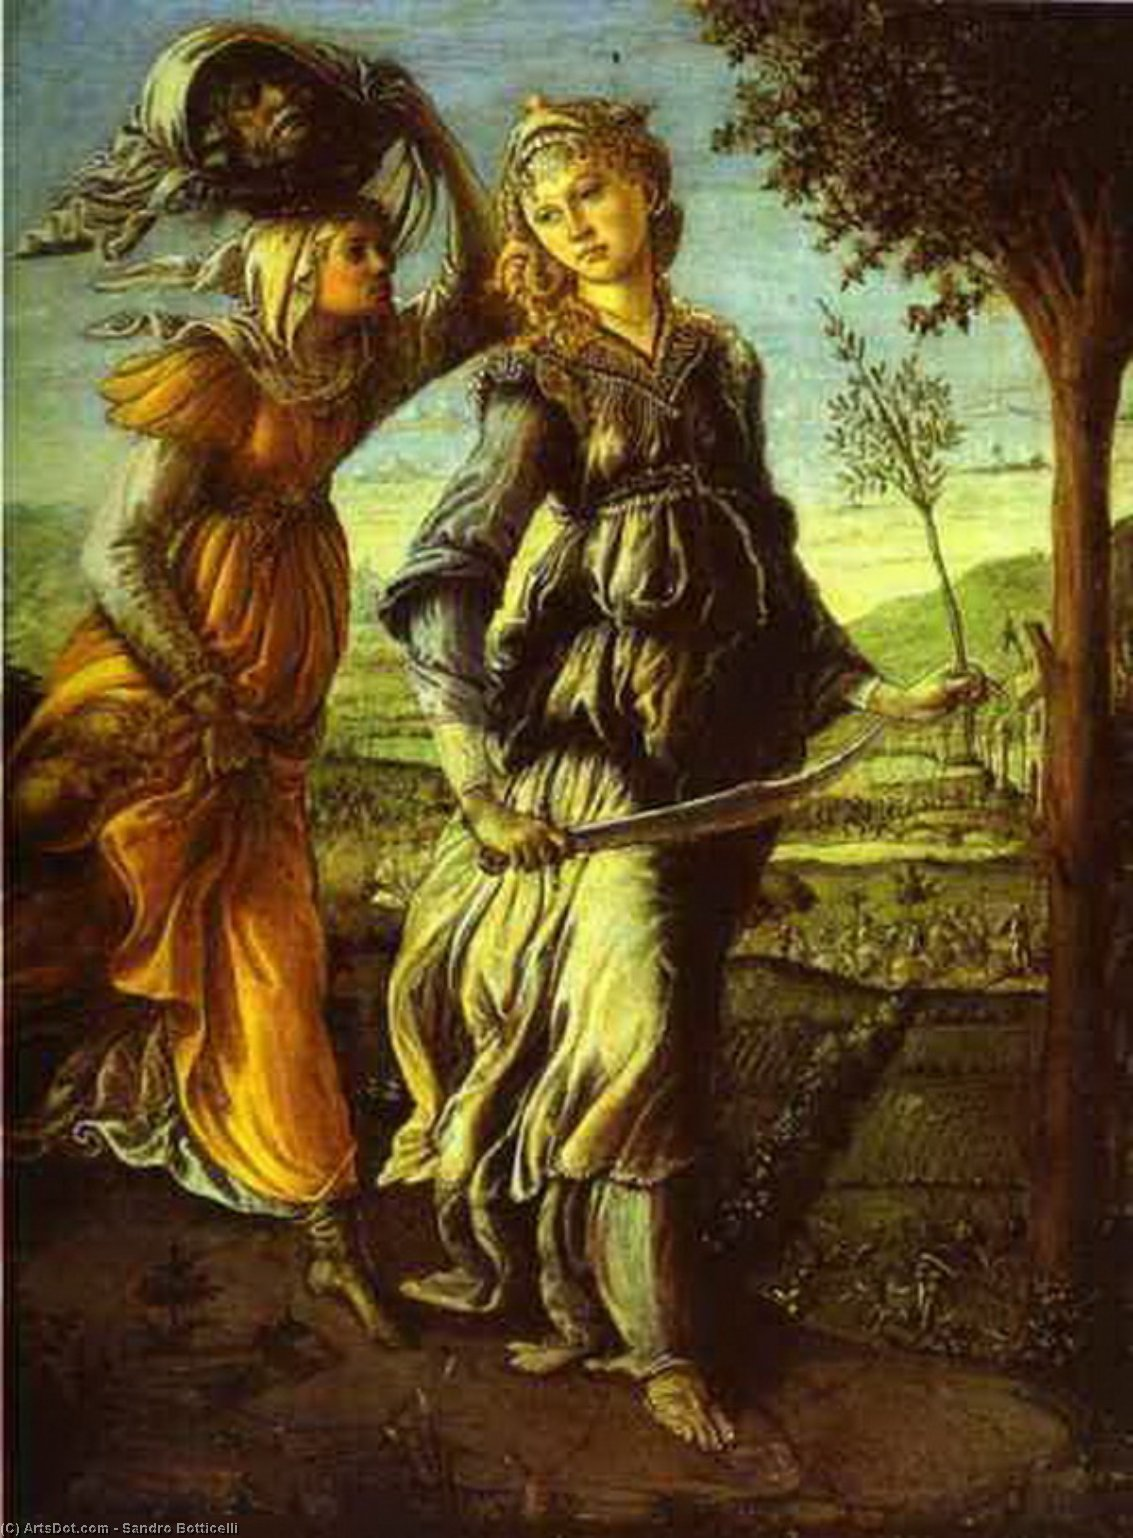 sandro botticelli Sandro botticelli biography painting images with interpretations painting by sandro botticelli alessandro filipepi, known as sandro botticelli, (1444-1510) began his career during the italian renaissance period.